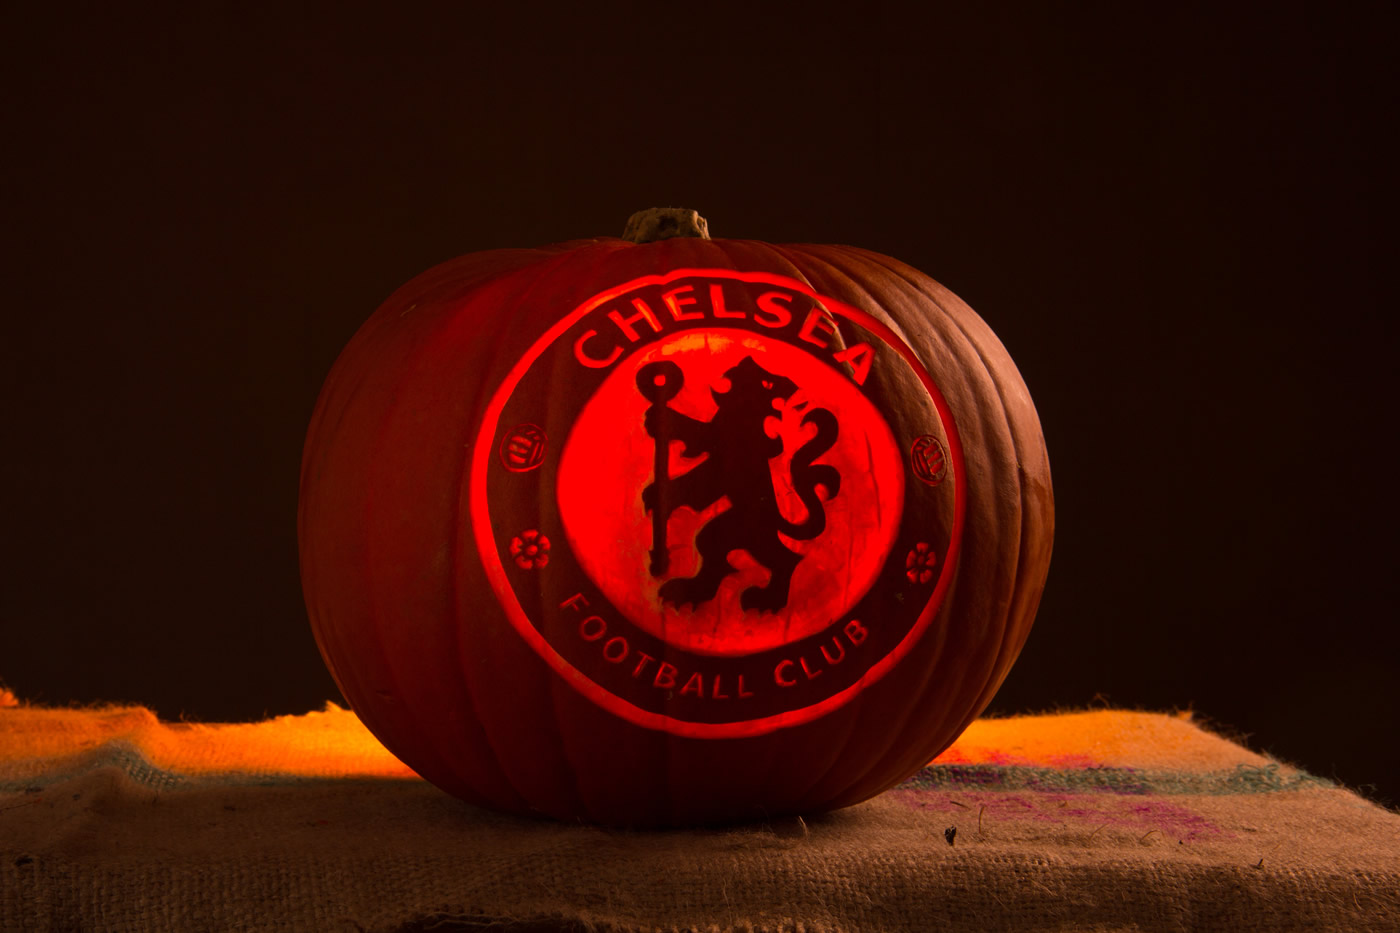 Footballers portraits carved into pumpkins made for